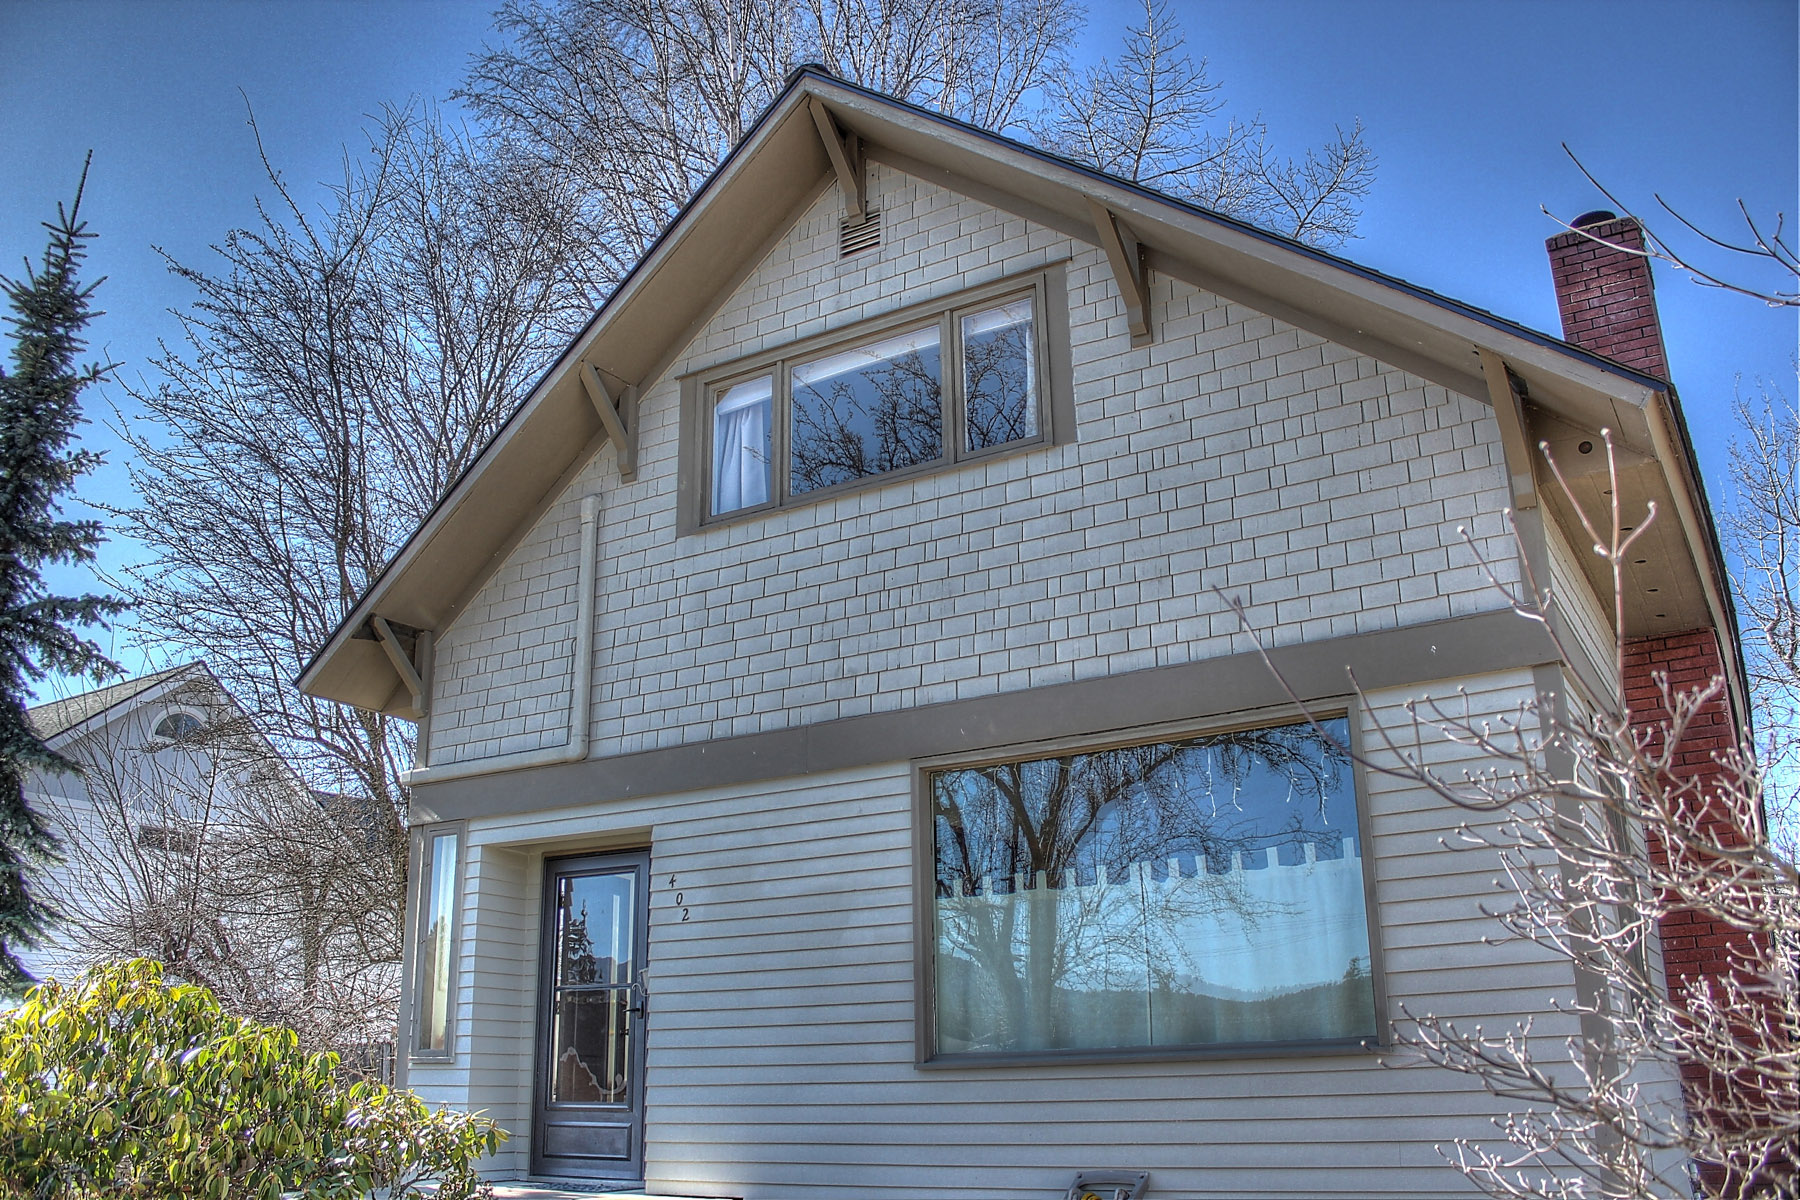 Single Family Home for Sale at Classic South Side Home 402 S Boyer Sandpoint, Idaho 83864 United States